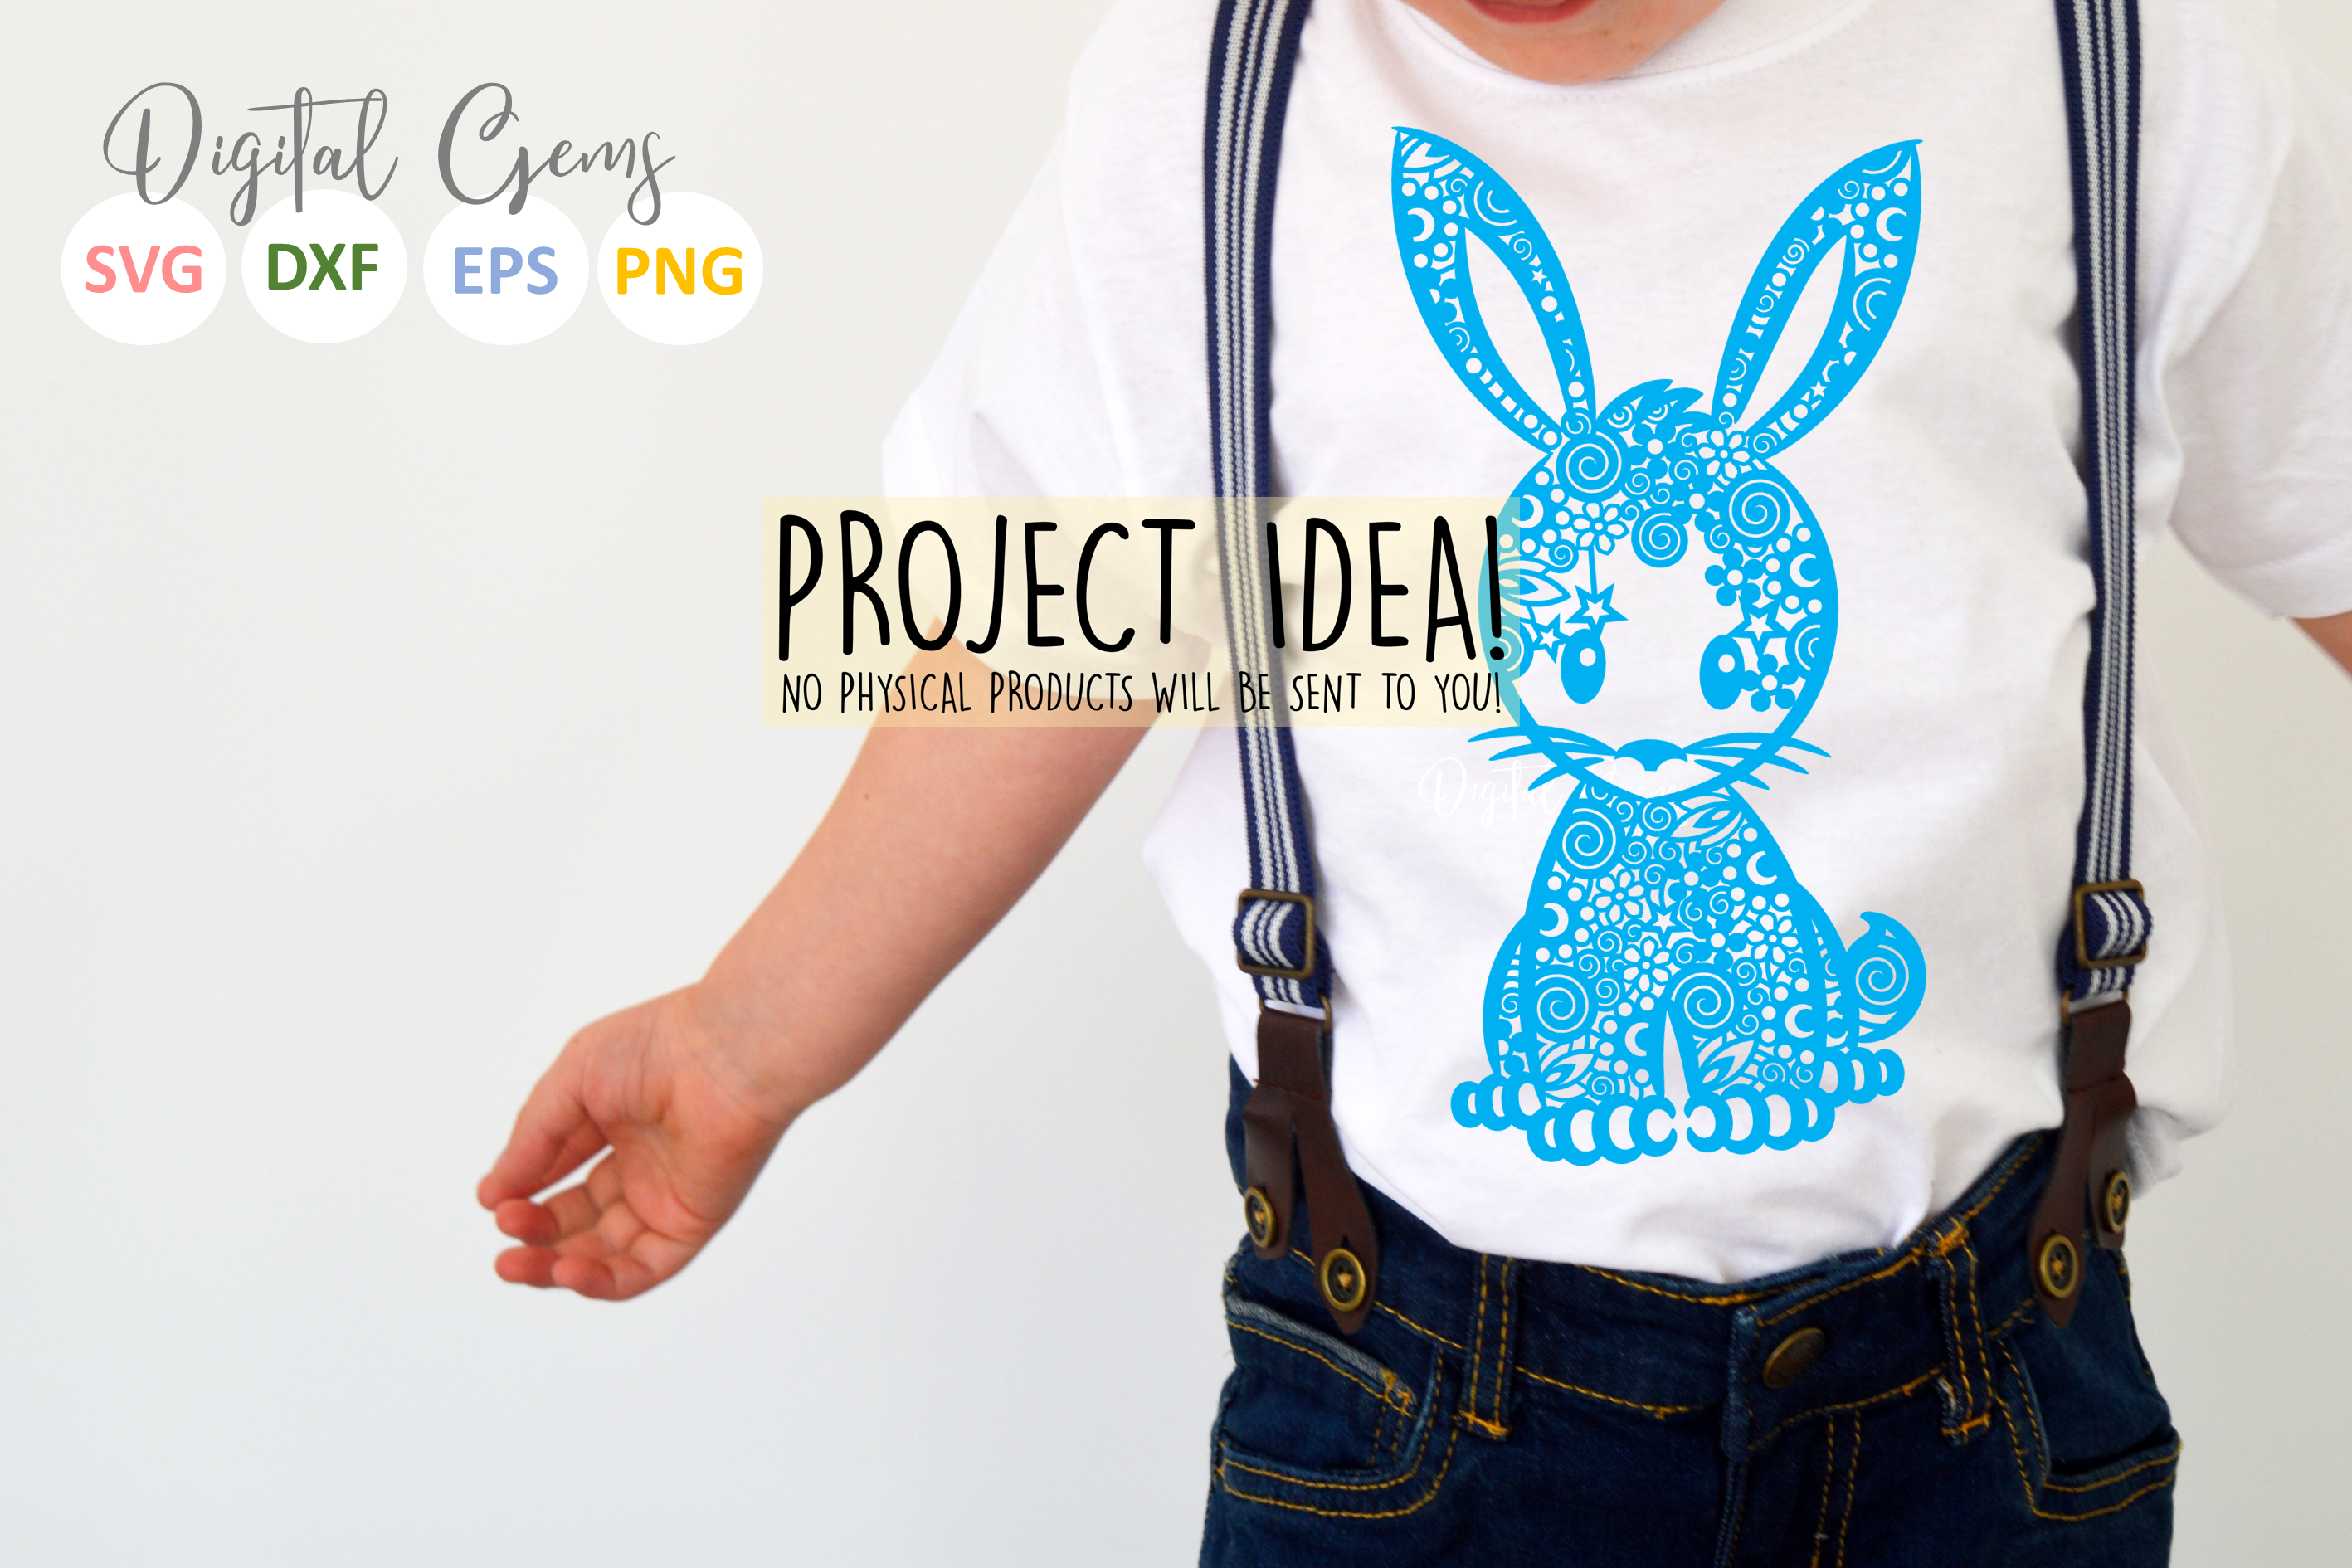 Bunny Rabbit paper cut SVG / DXF / EPS / PNG files example image 2